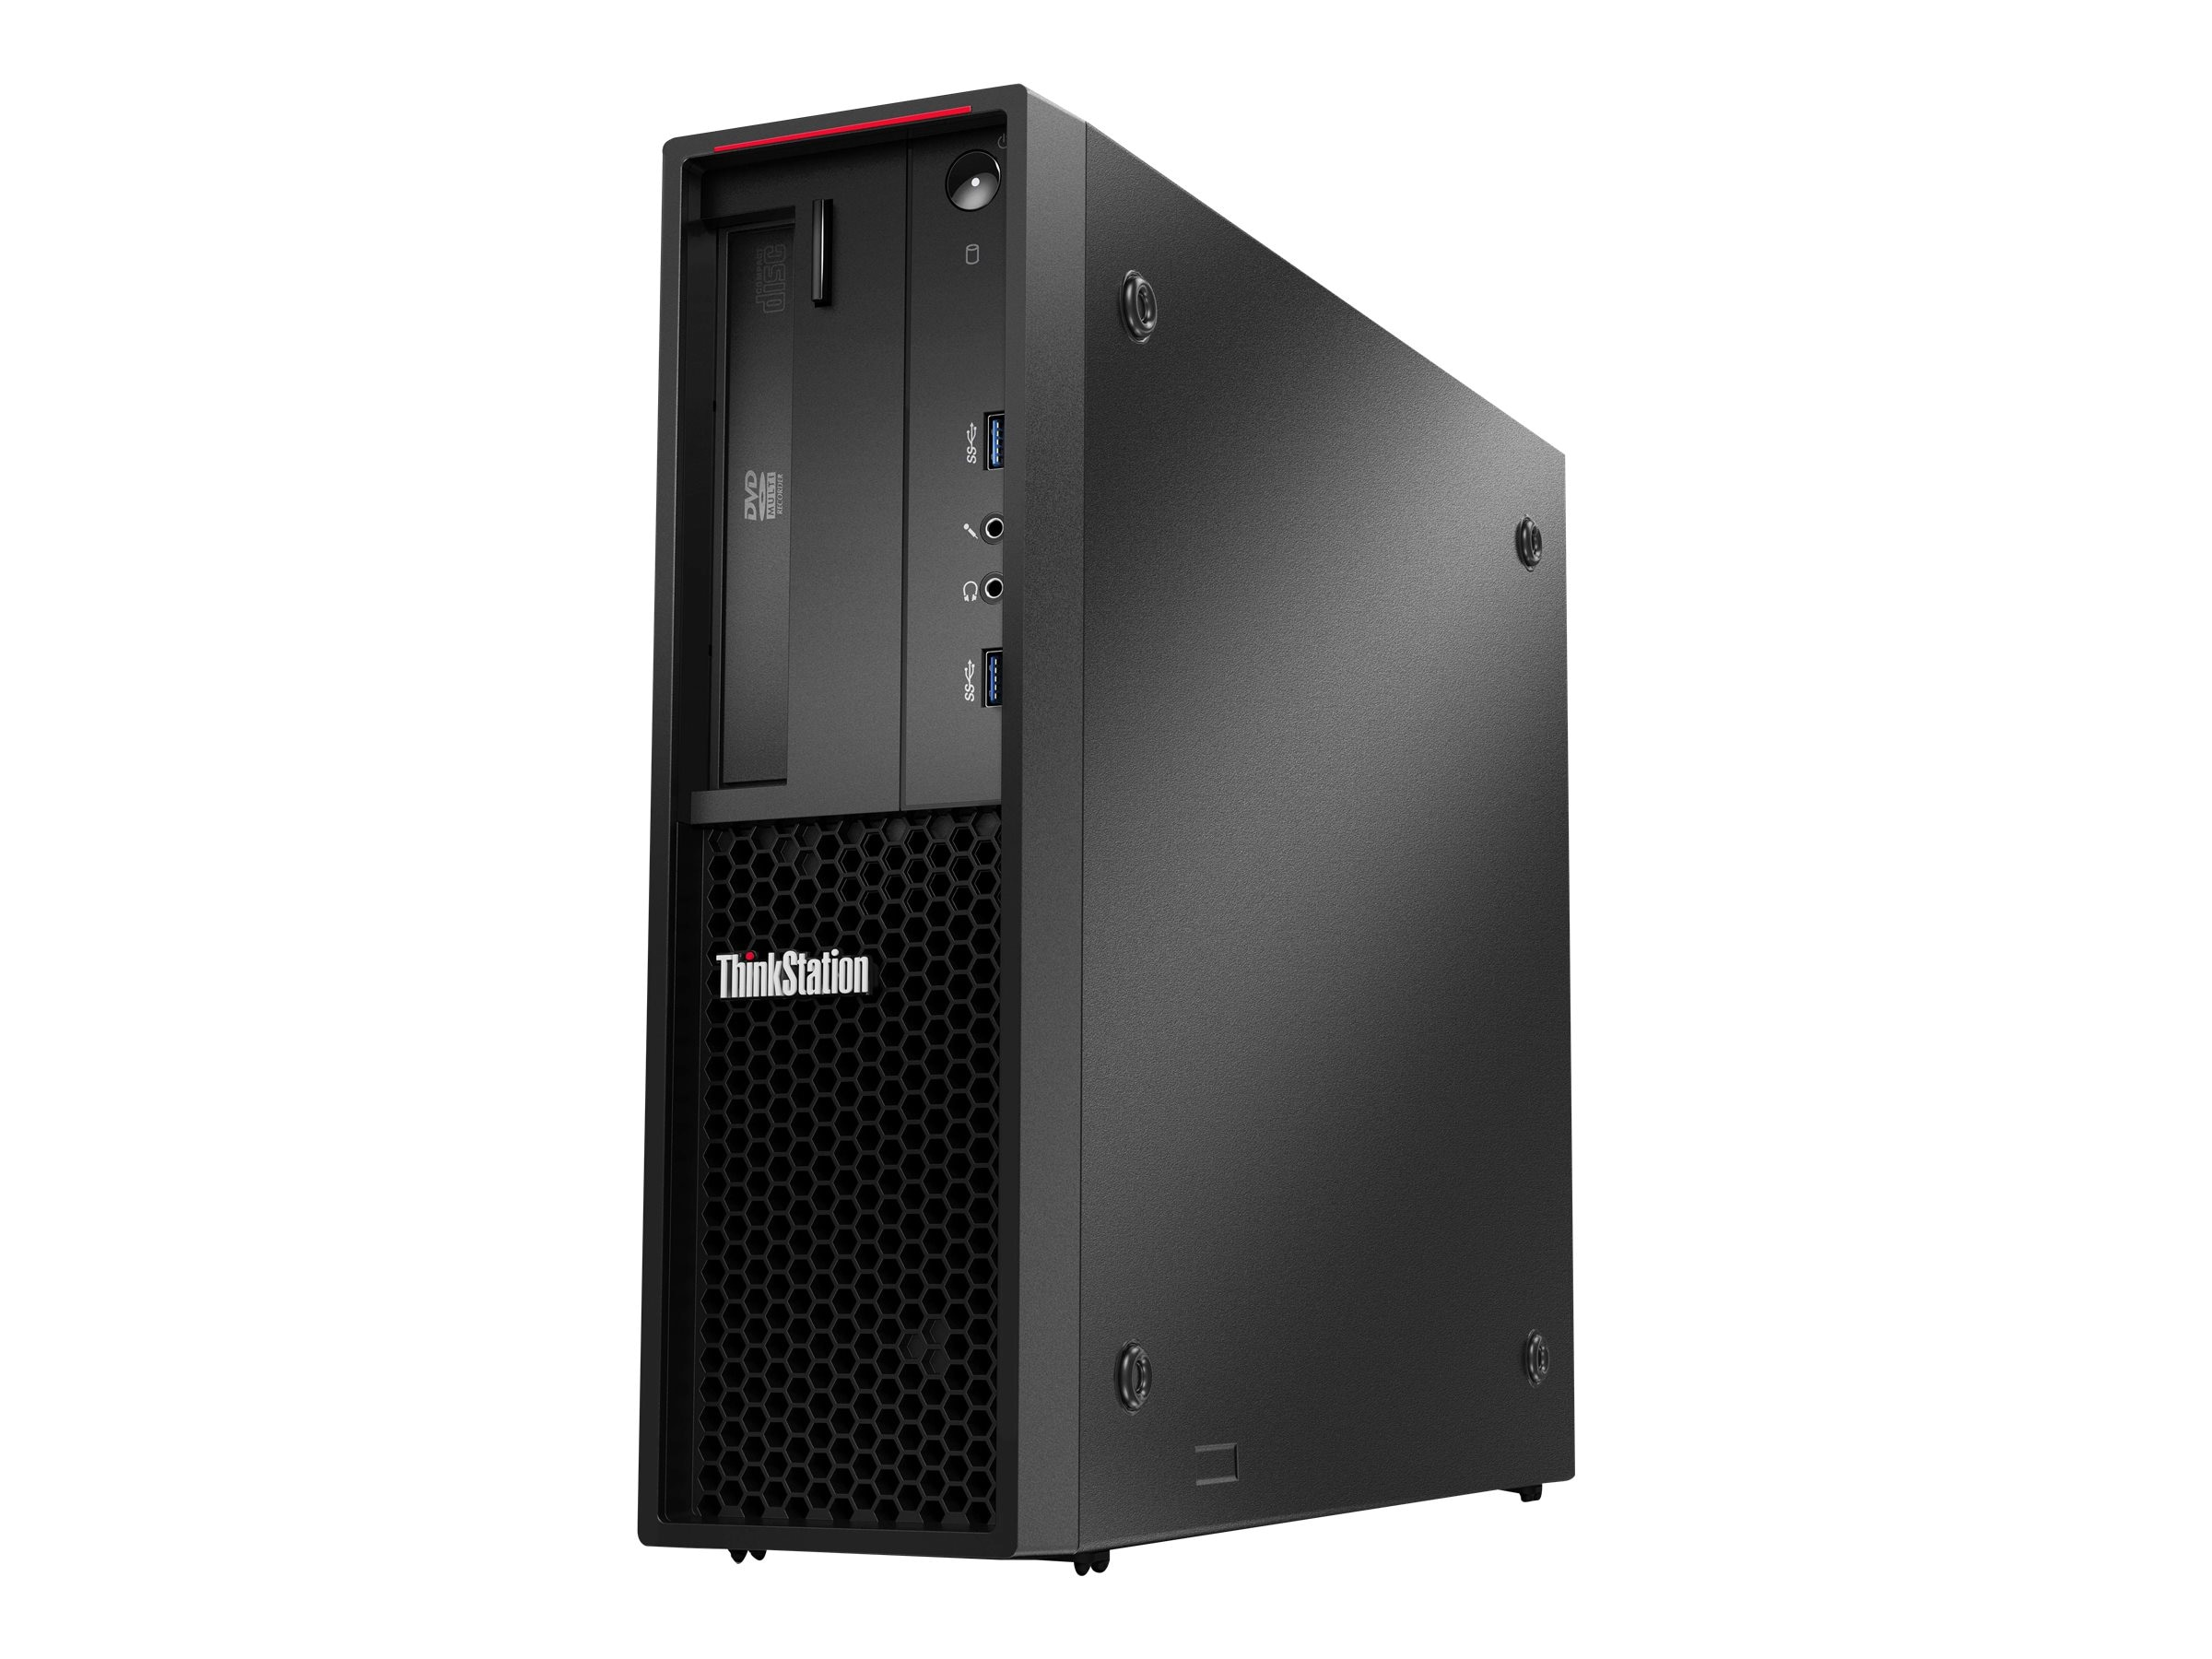 Lenovo TopSeller ThinkStation P310 3.5GHz Xeon Windows 10 Pro 64-bit Edition, 30AV0020US